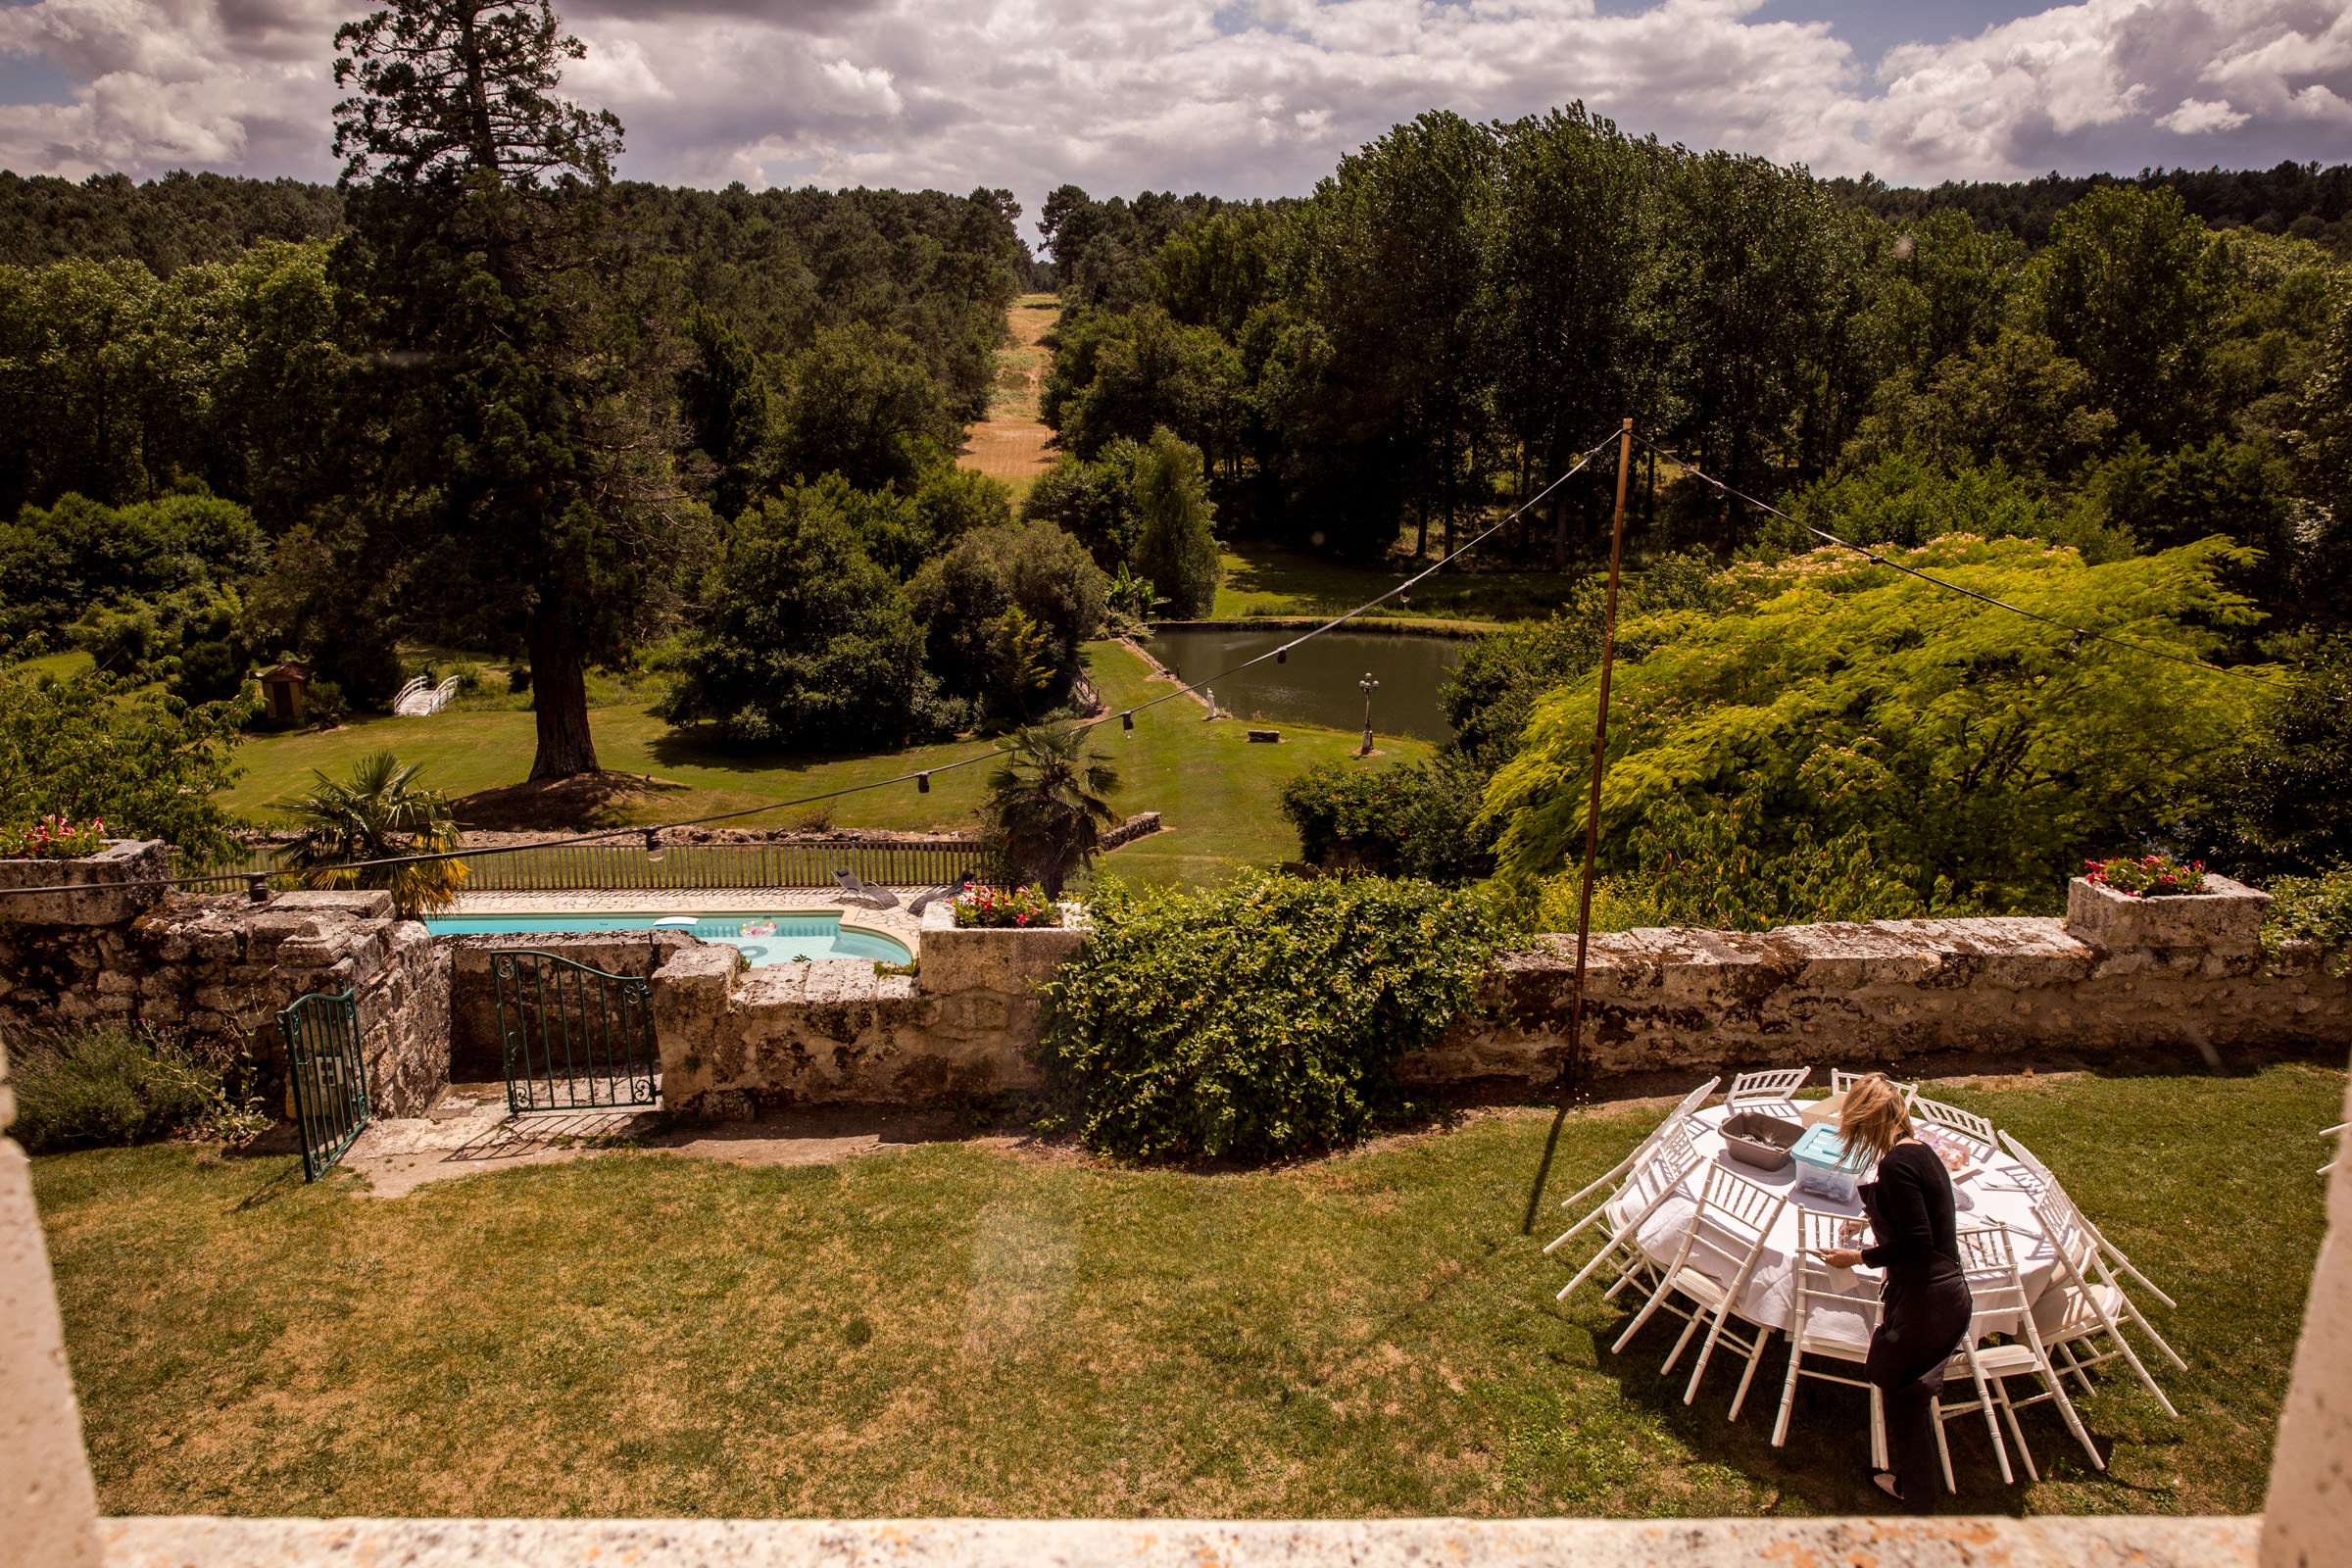 Uk Wedding photographers working at chateau de lisse in gascony 021.jpg